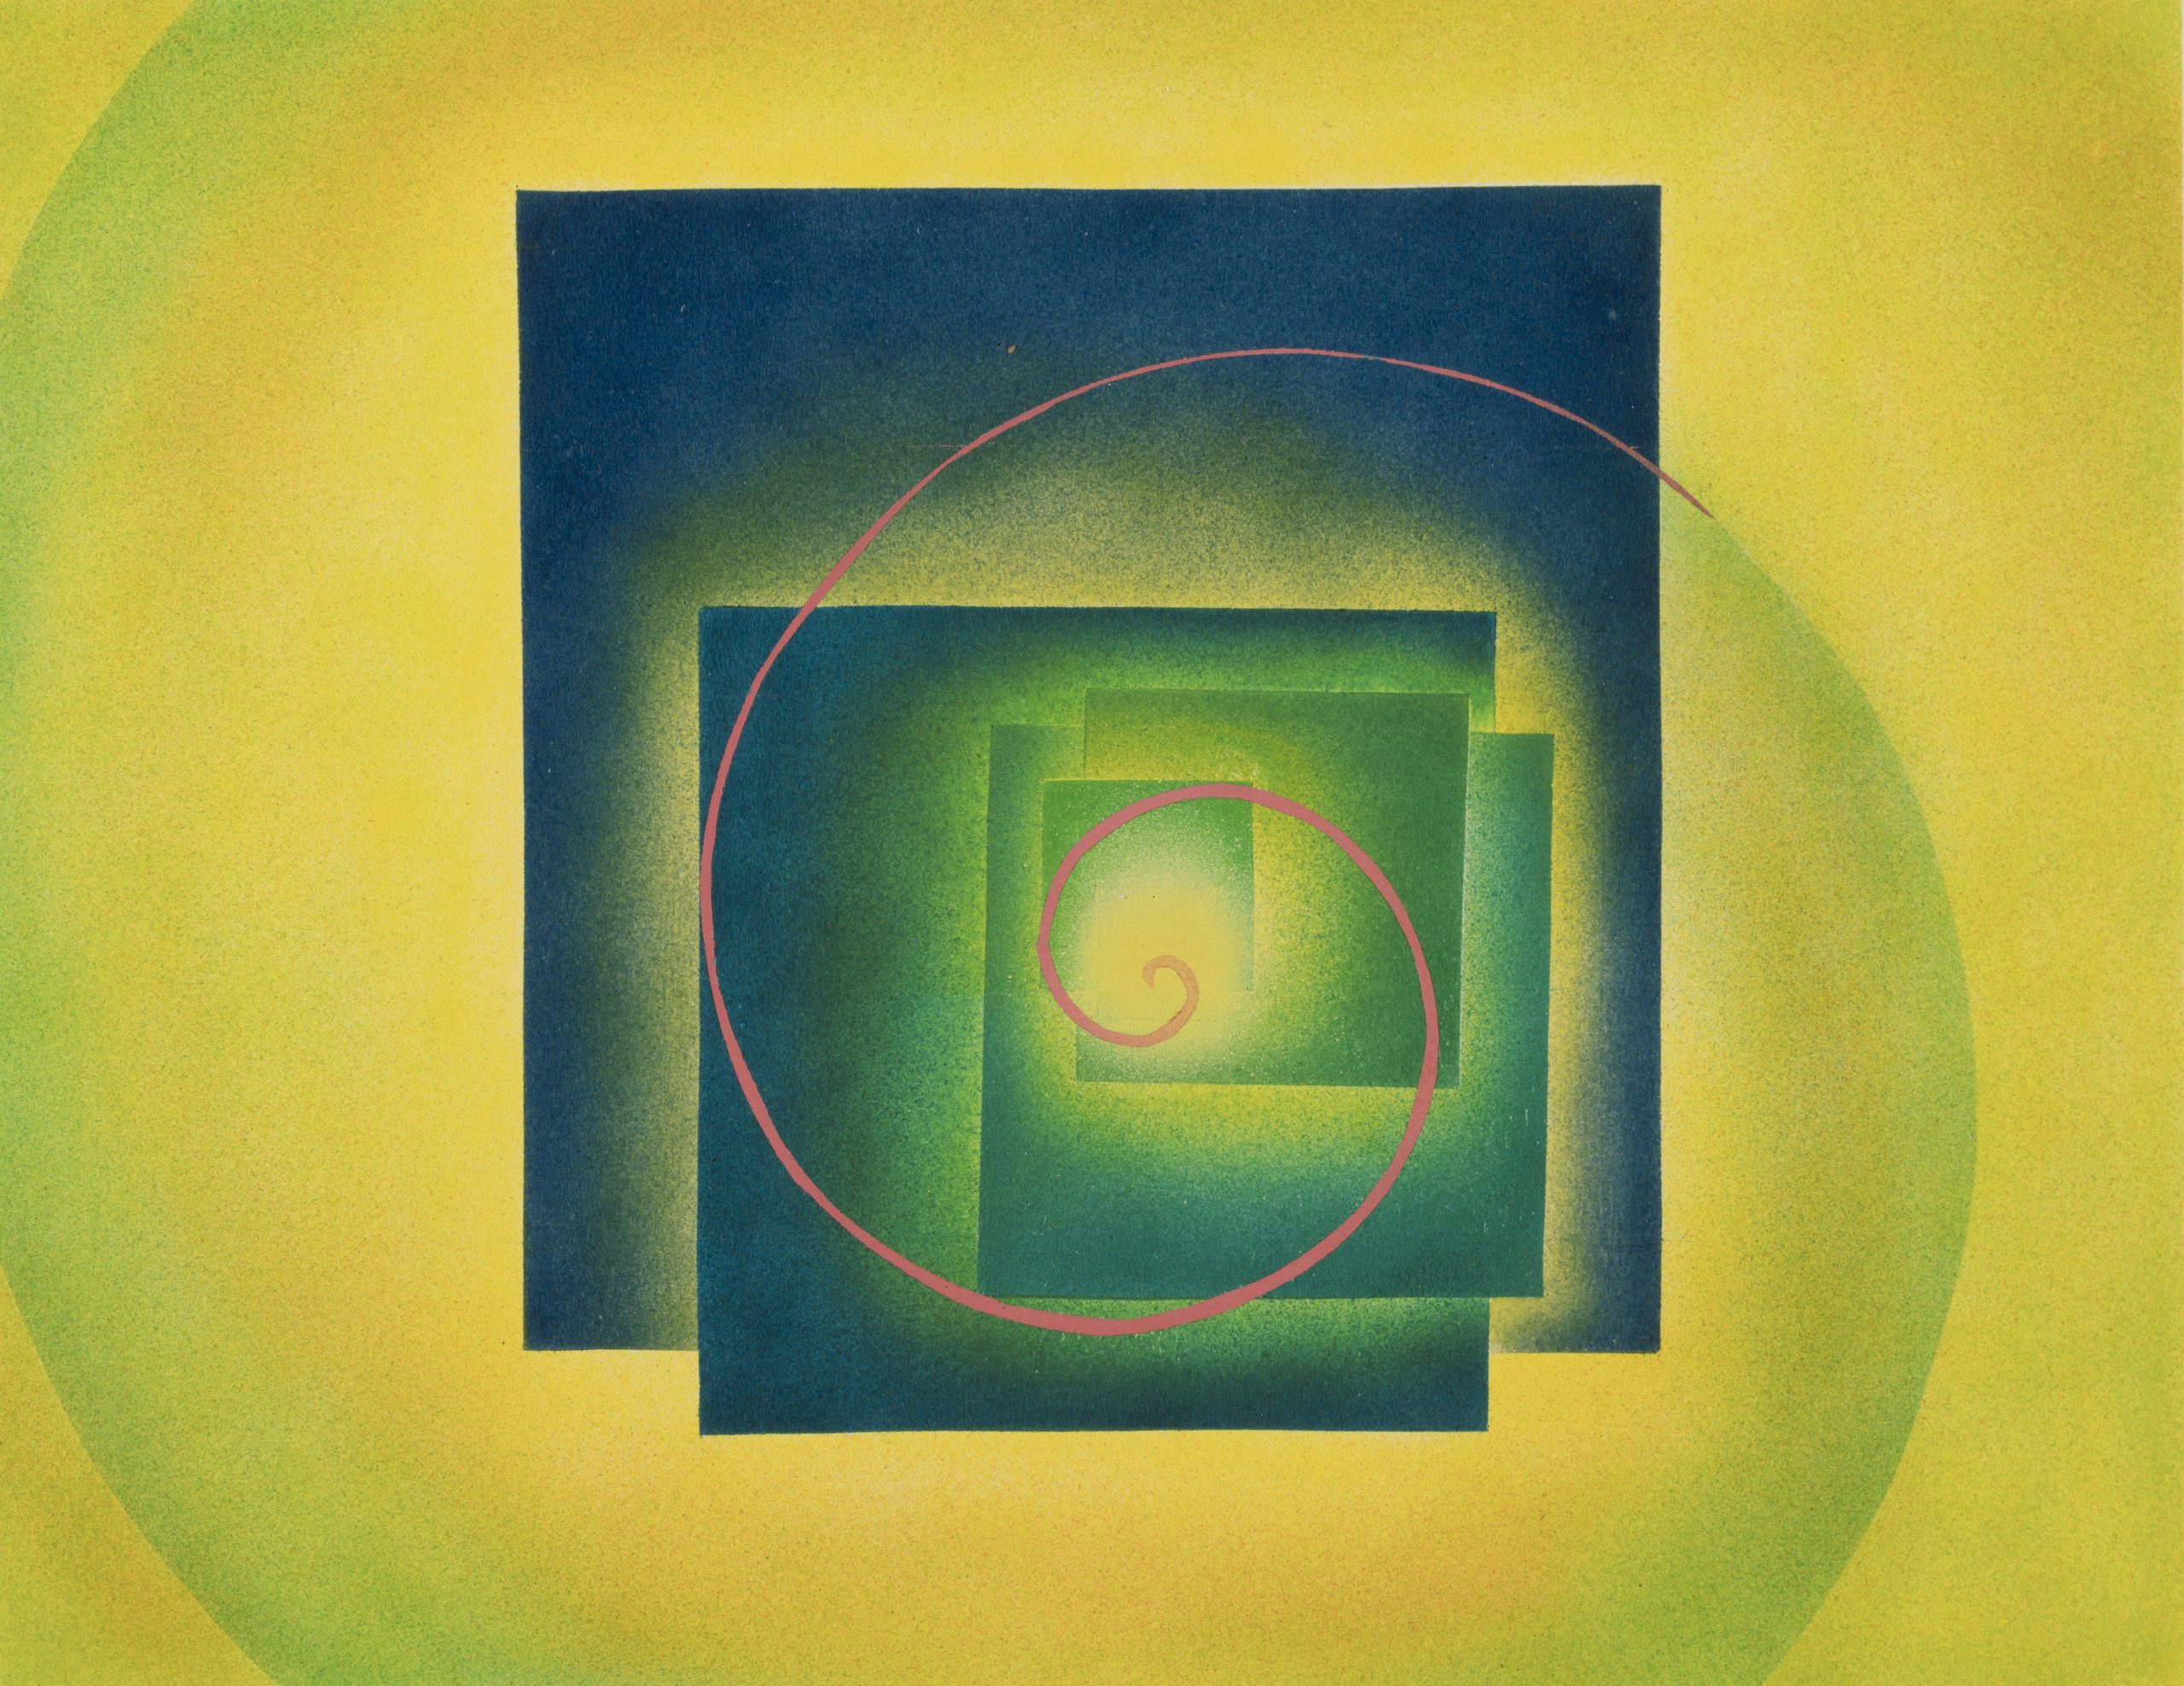 Horace Towner Pierce, Frame 12, Second Movement, (the Crystal) from The Spiral Symphony, 1938, Watercolor on paper, Purchase with funds from the Edith Gregg Bequest, Raymond Jonson Collection